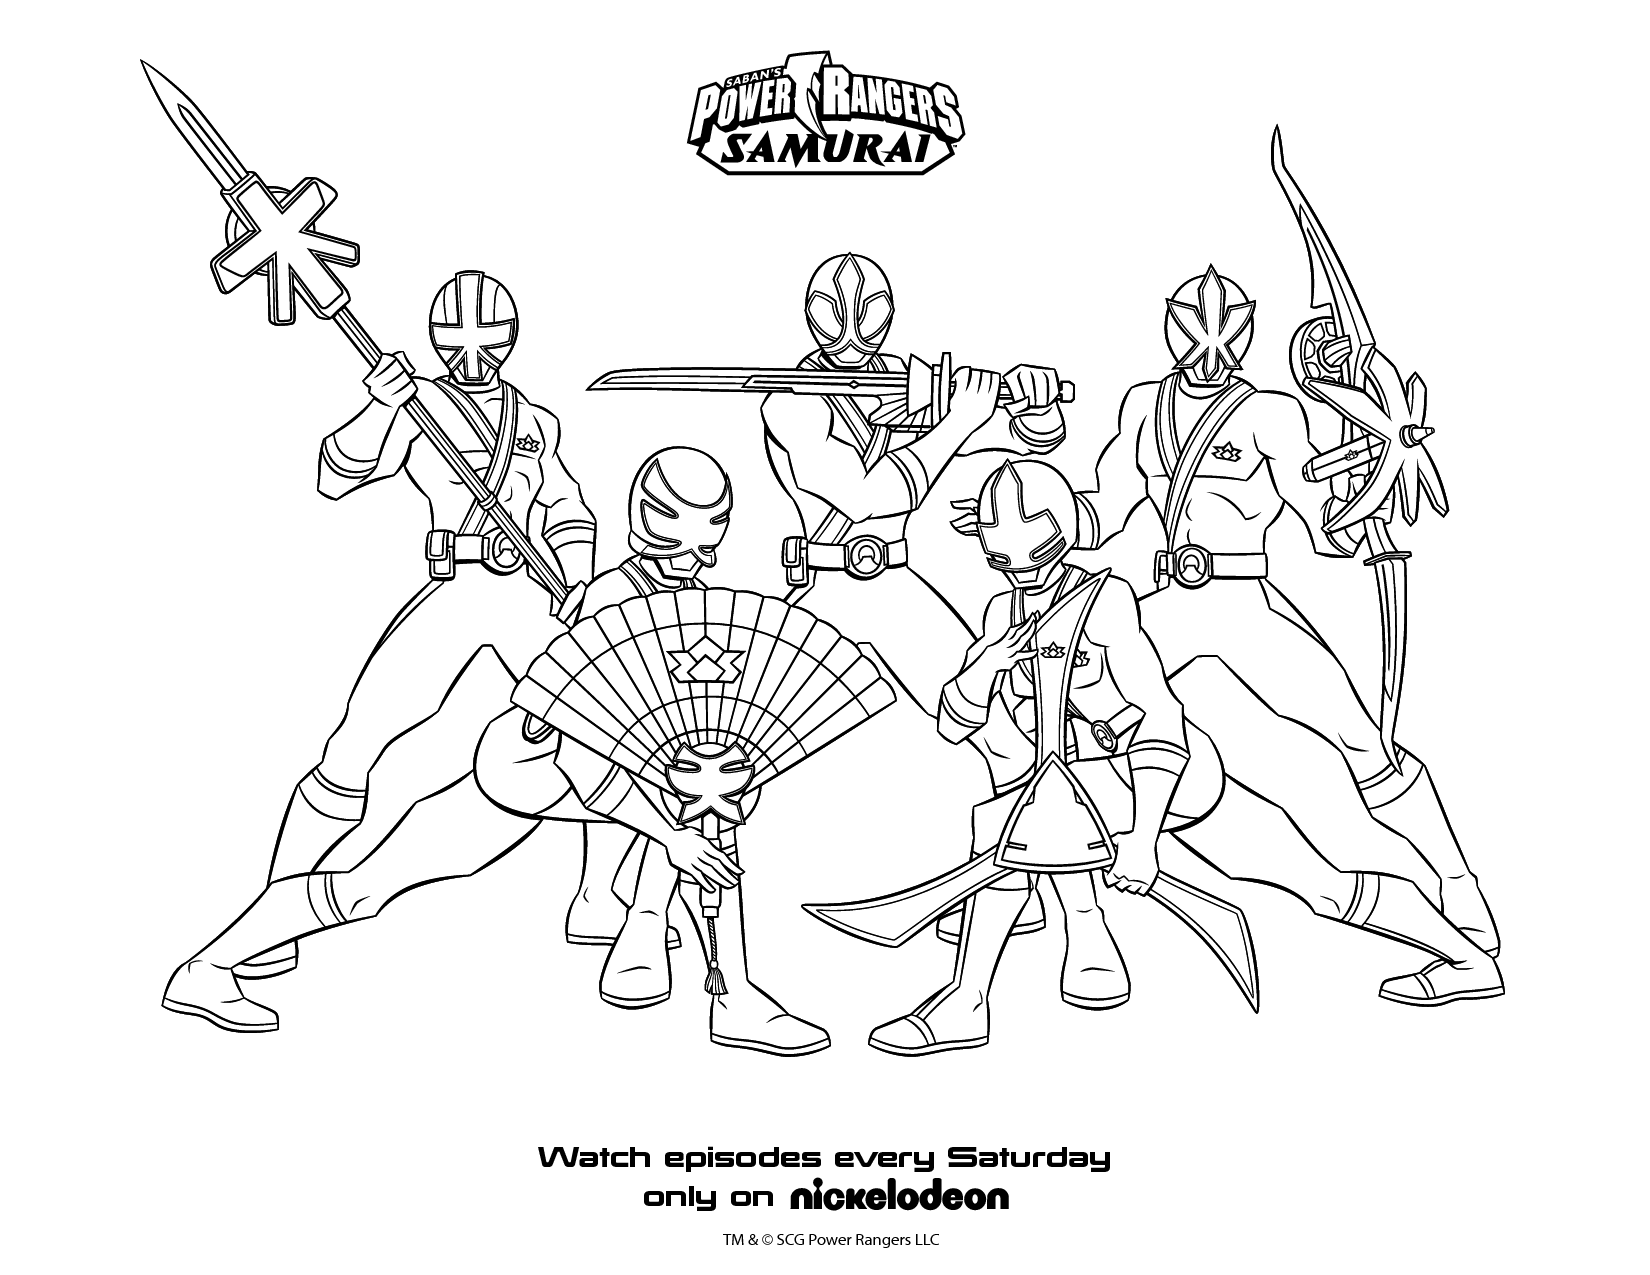 Power ranger samurai coloring pages | Power Ranger Ausmalbild ...